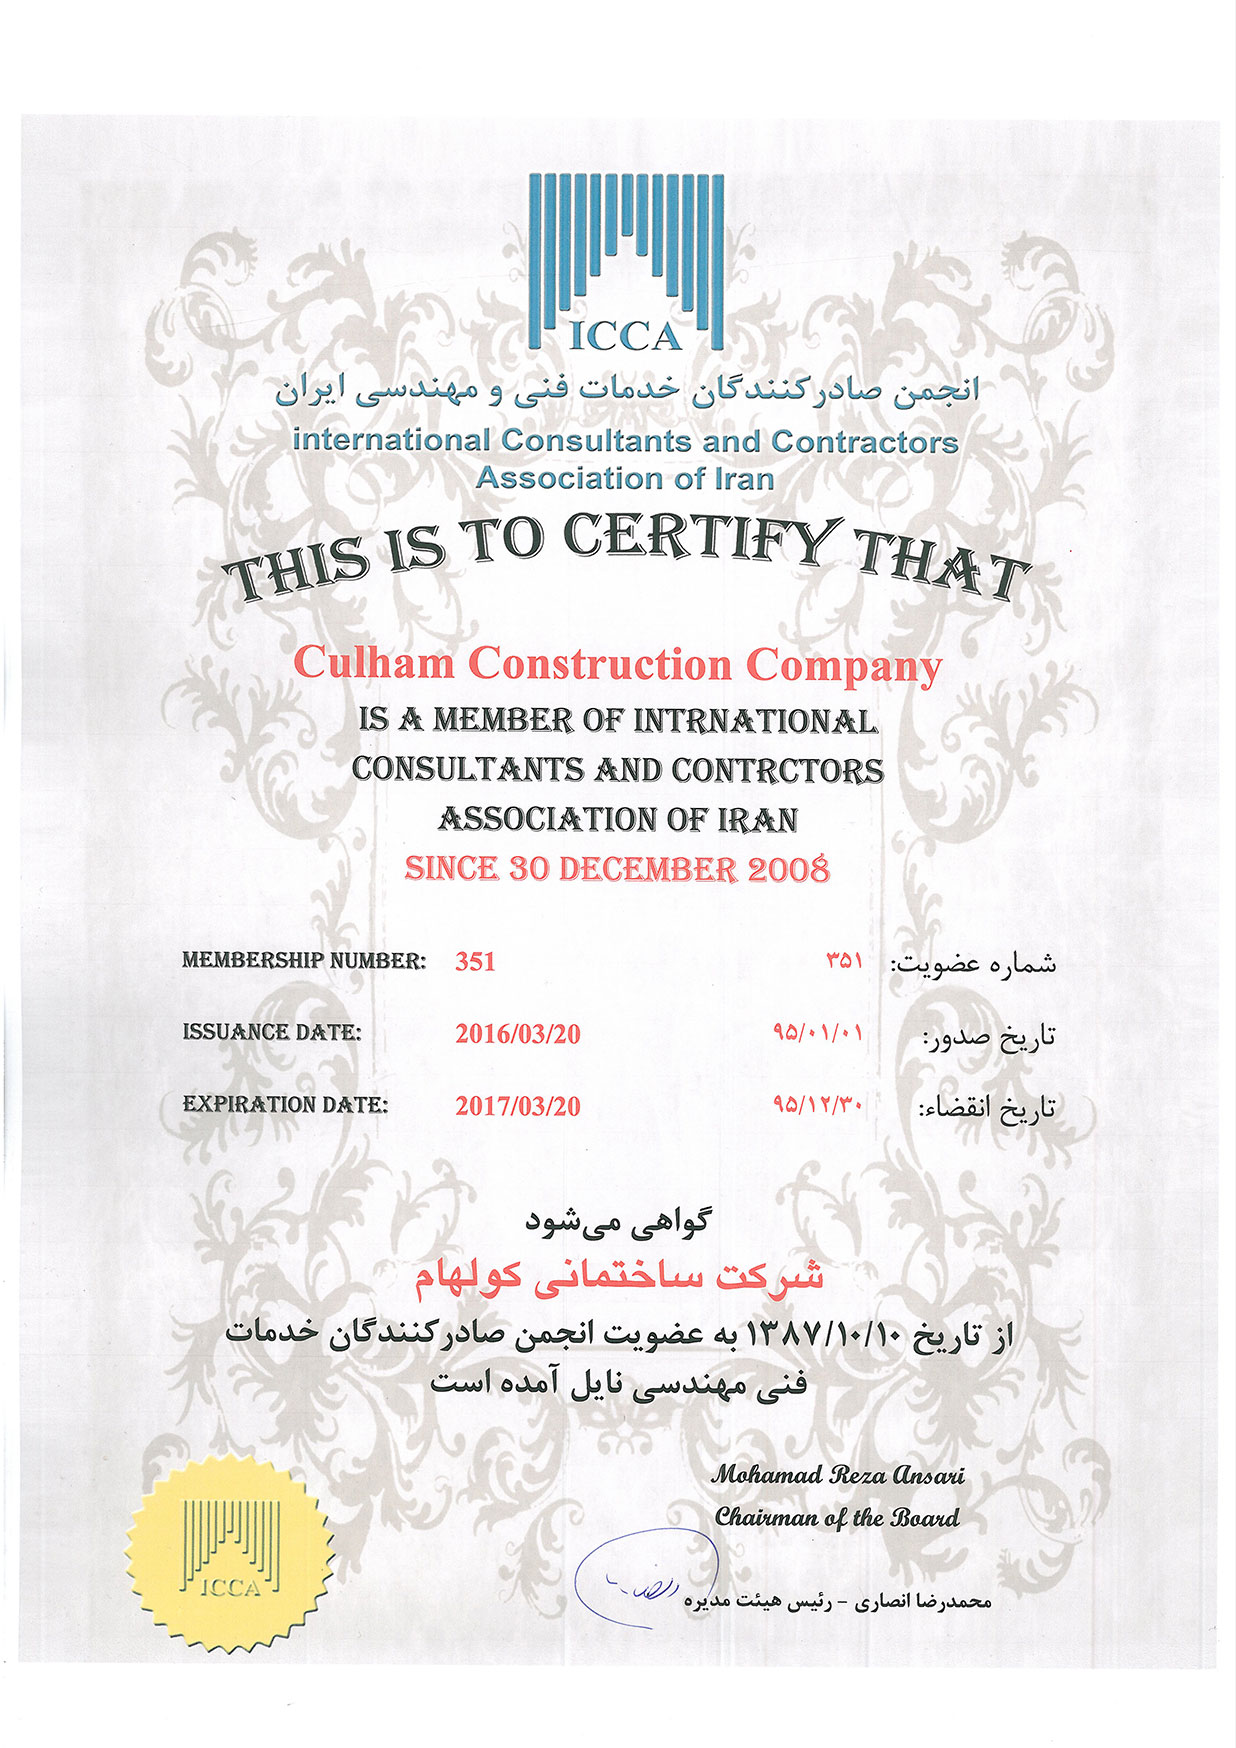 International Consultants and Contractors Association of Iran